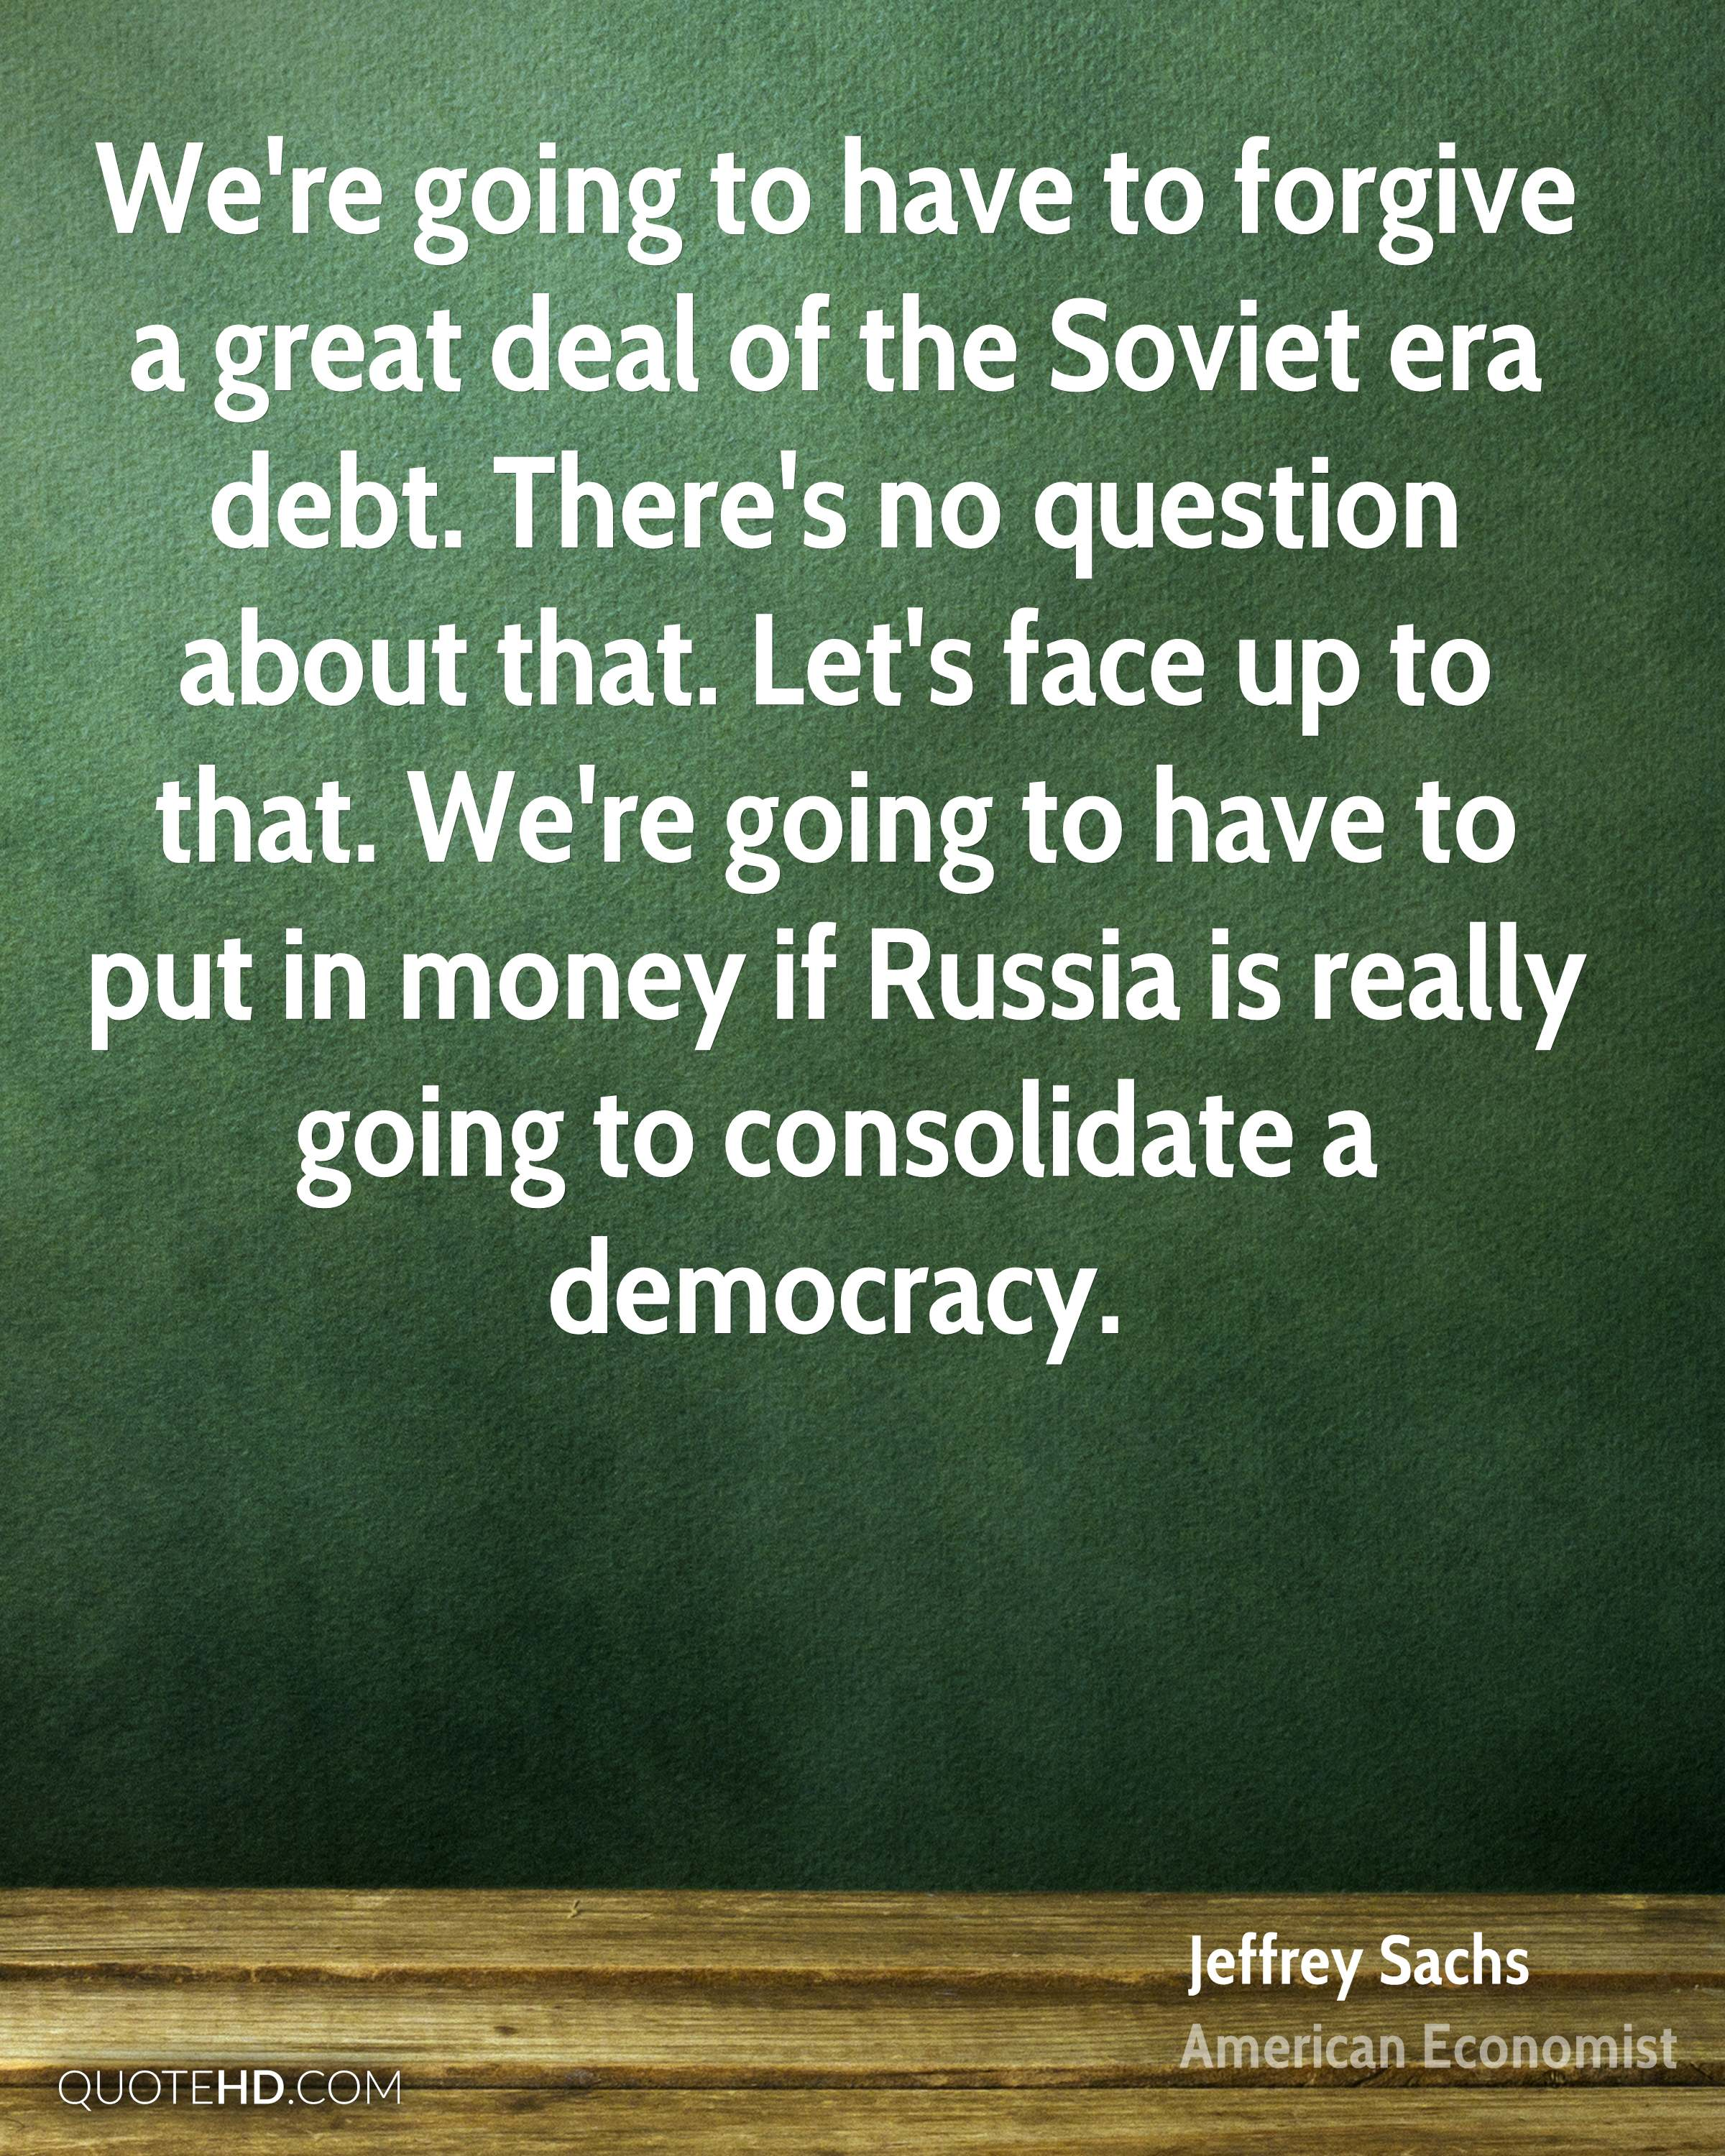 We're going to have to forgive a great deal of the Soviet era debt. There's no question about that. Let's face up to that. We're going to have to put in money if Russia is really going to consolidate a democracy.